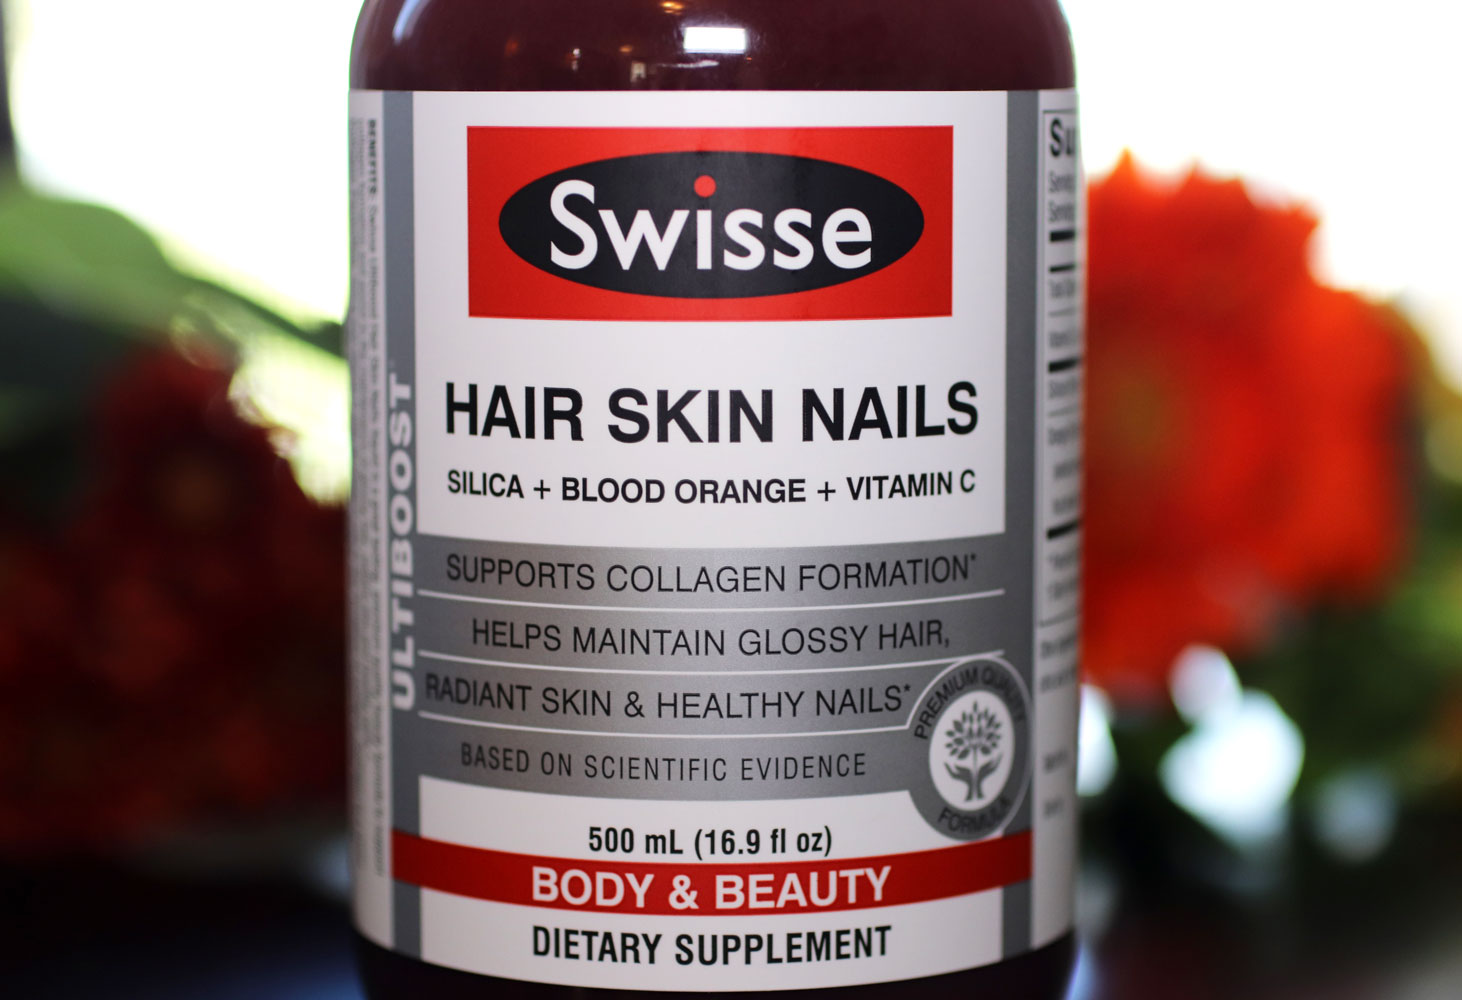 iHerb Review - Hair Skin Nails beauty supplement by Swisse